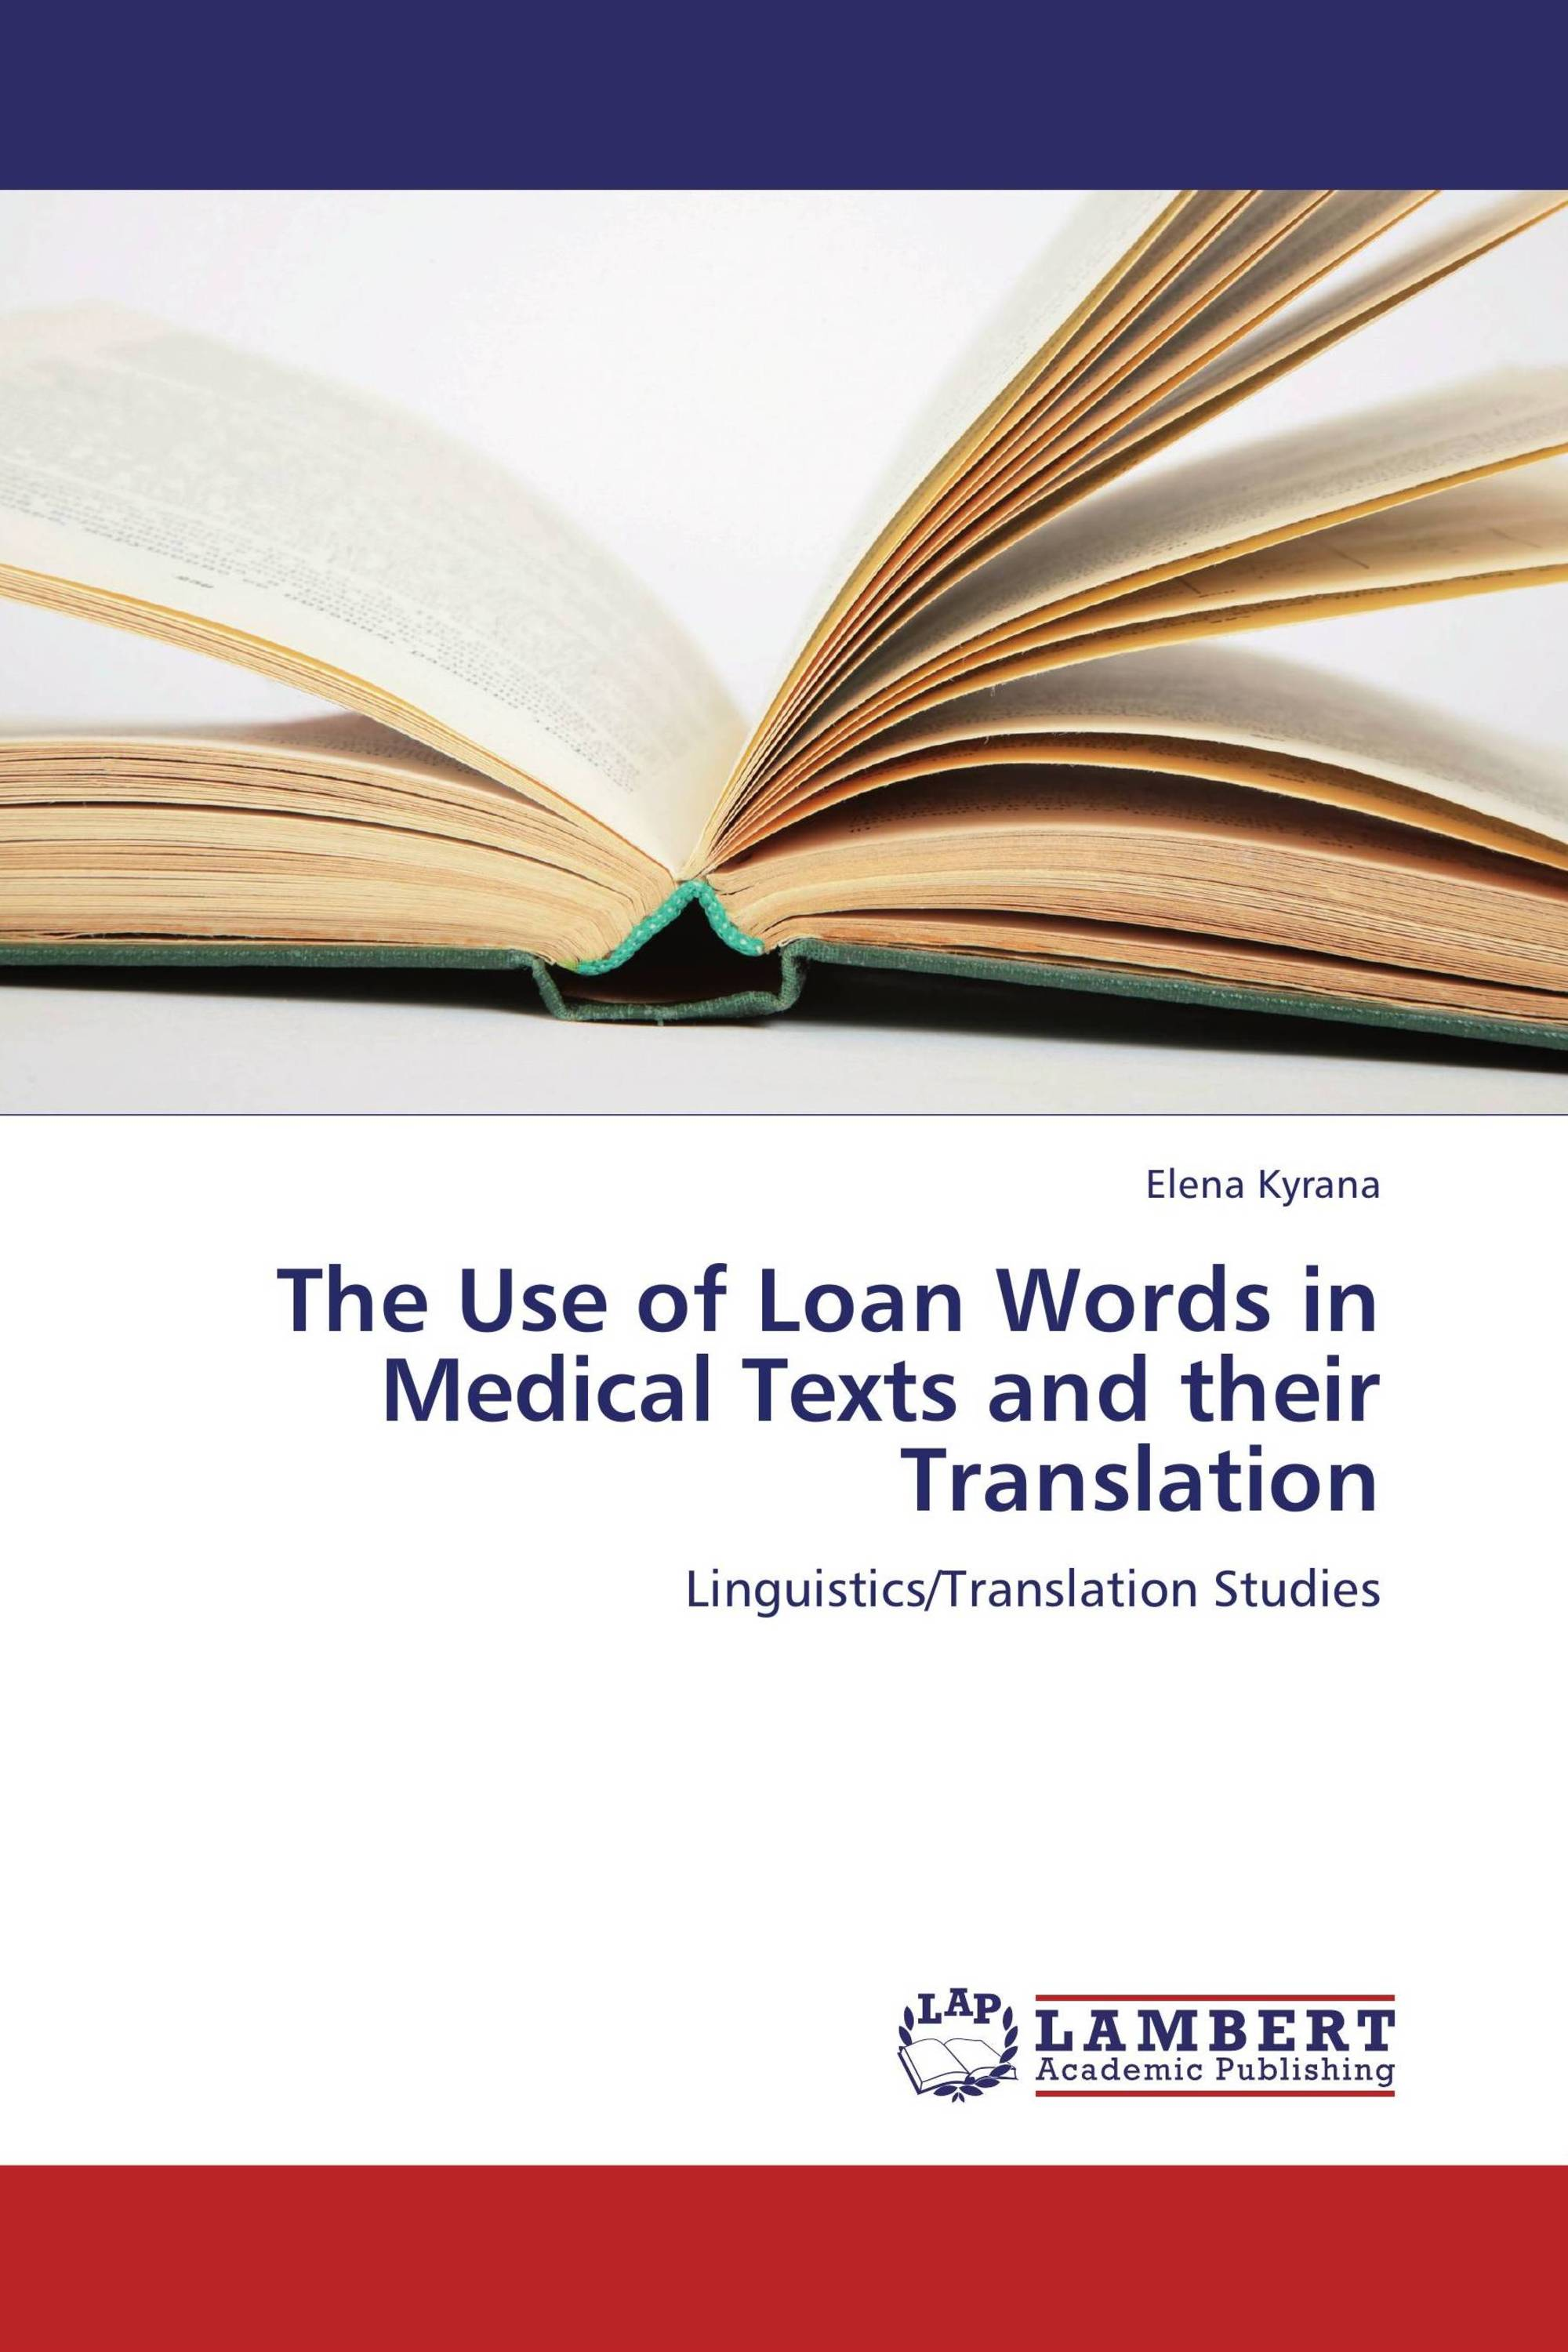 phd thesis on translation studies